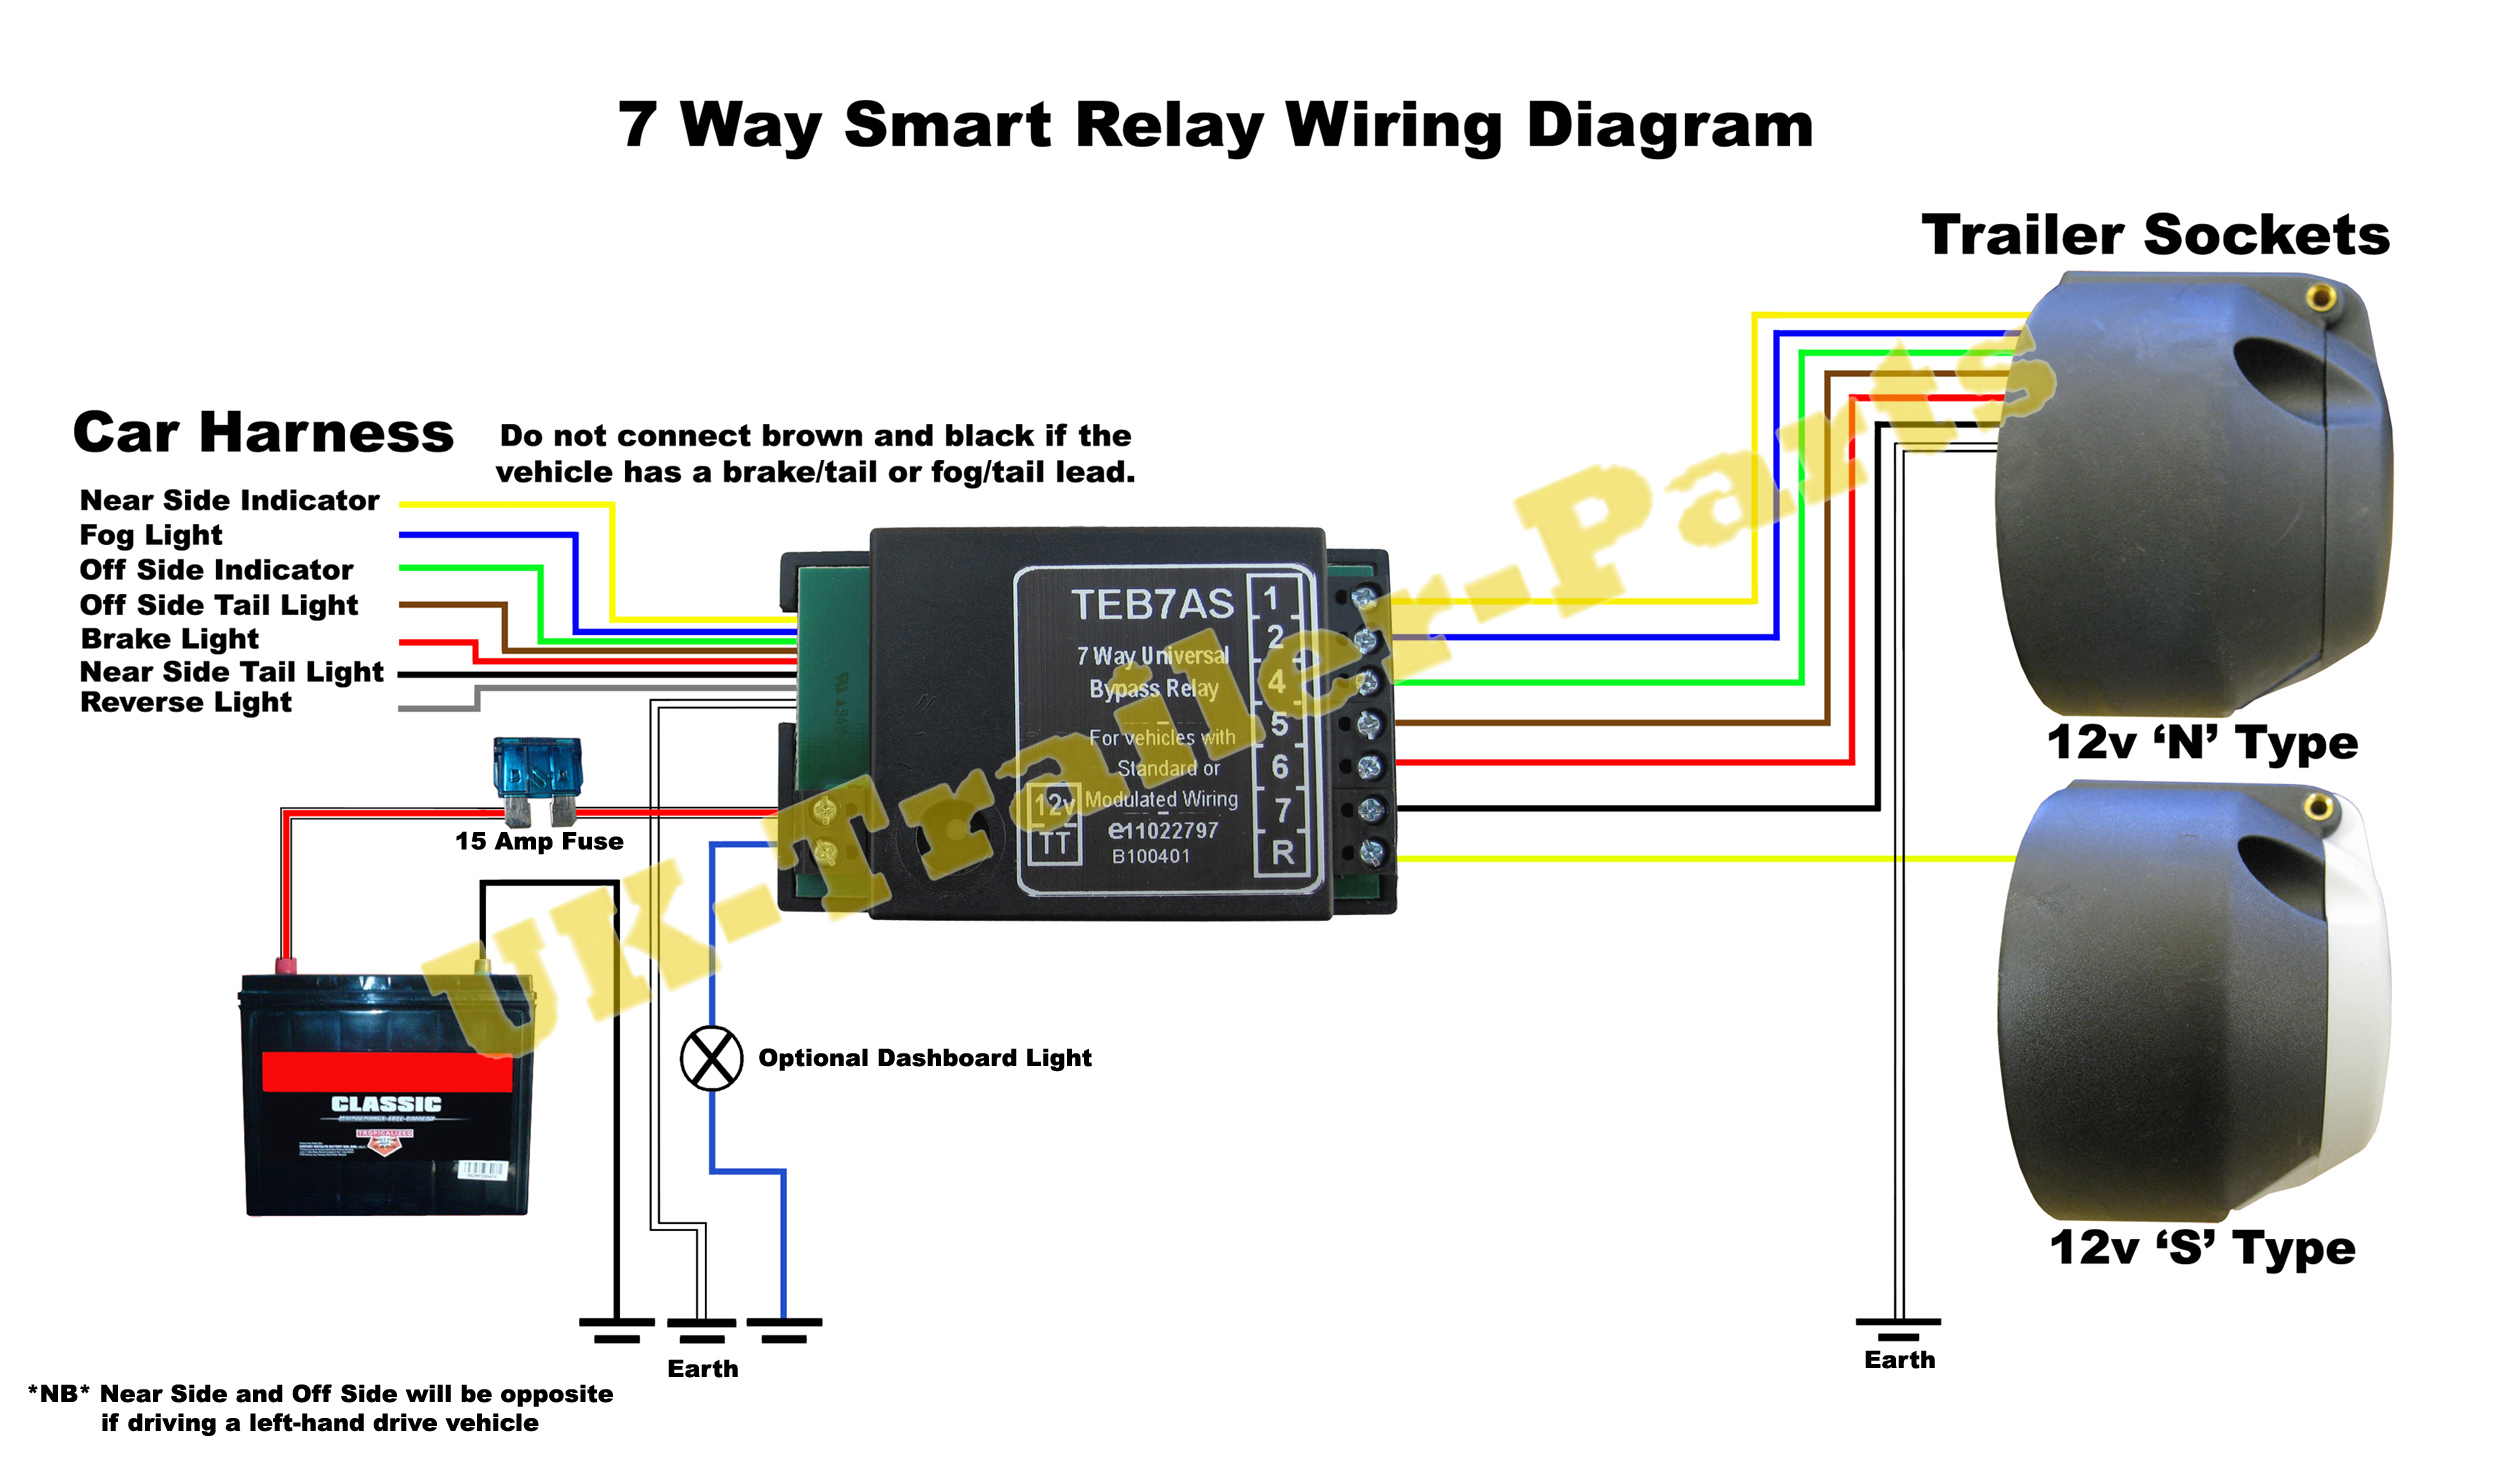 smart relay wiring diagram2 7 way universal bypass relay wiring diagram uk trailer parts 7 wire diagram at bakdesigns.co